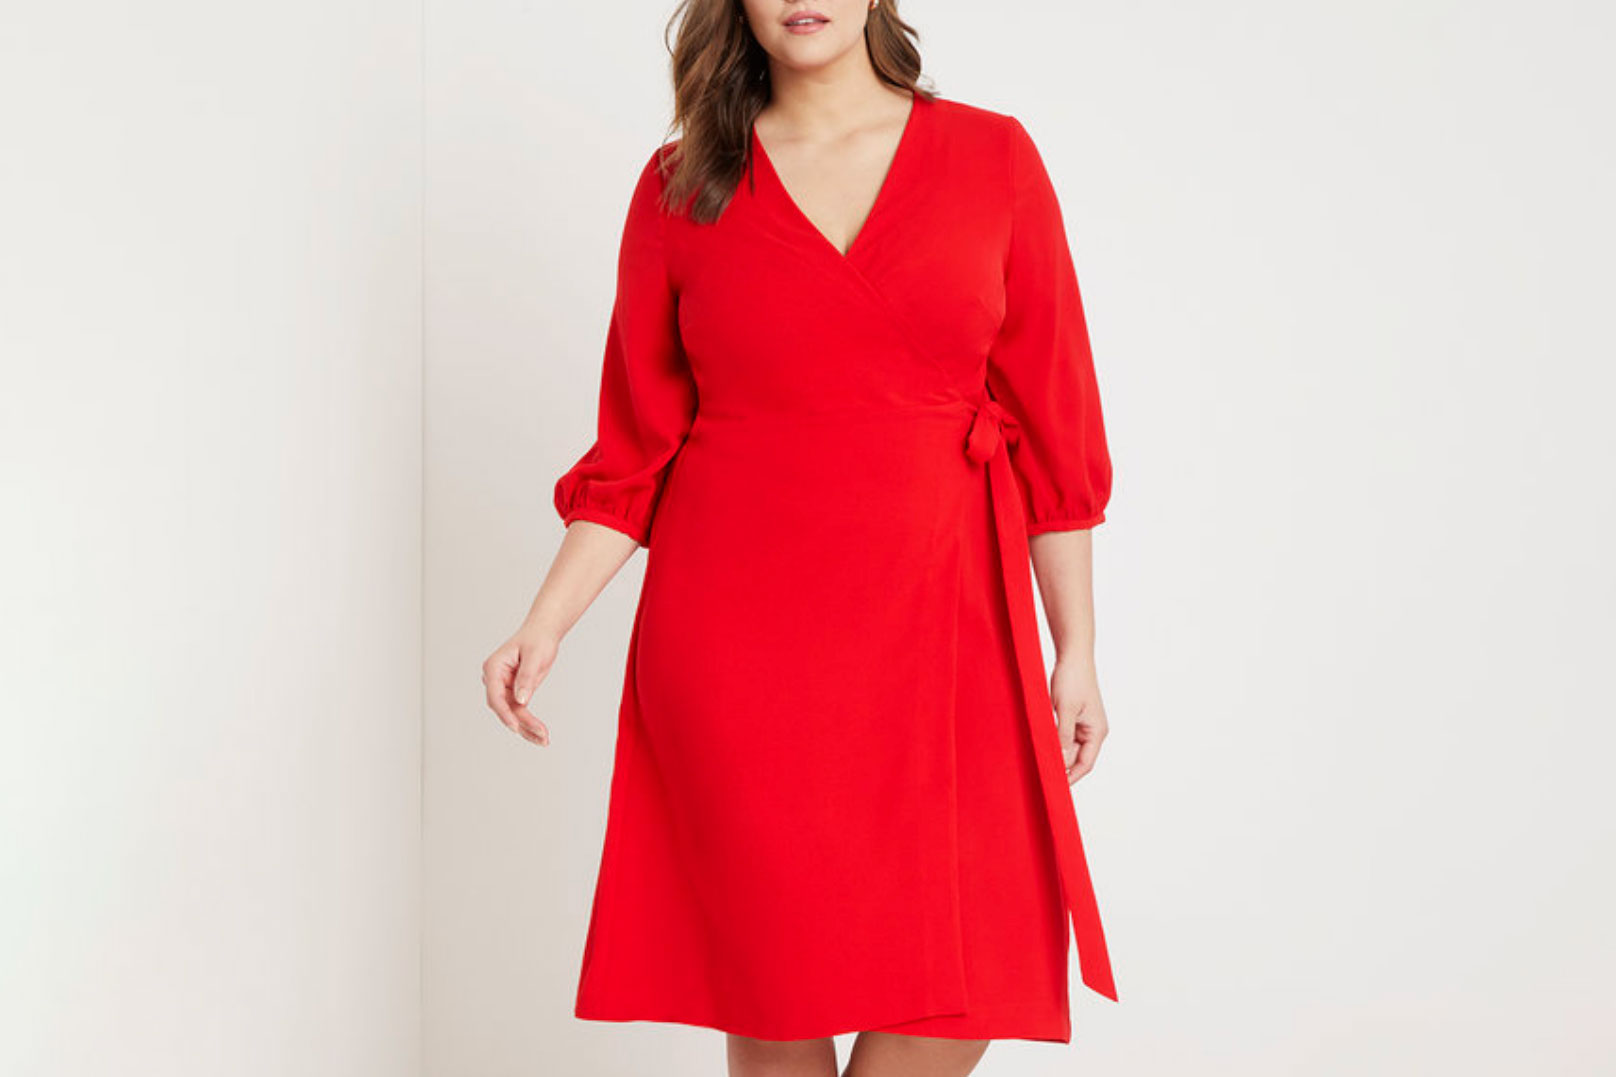 Eloquii Premier 3/4 Sleeve Wrap Dress